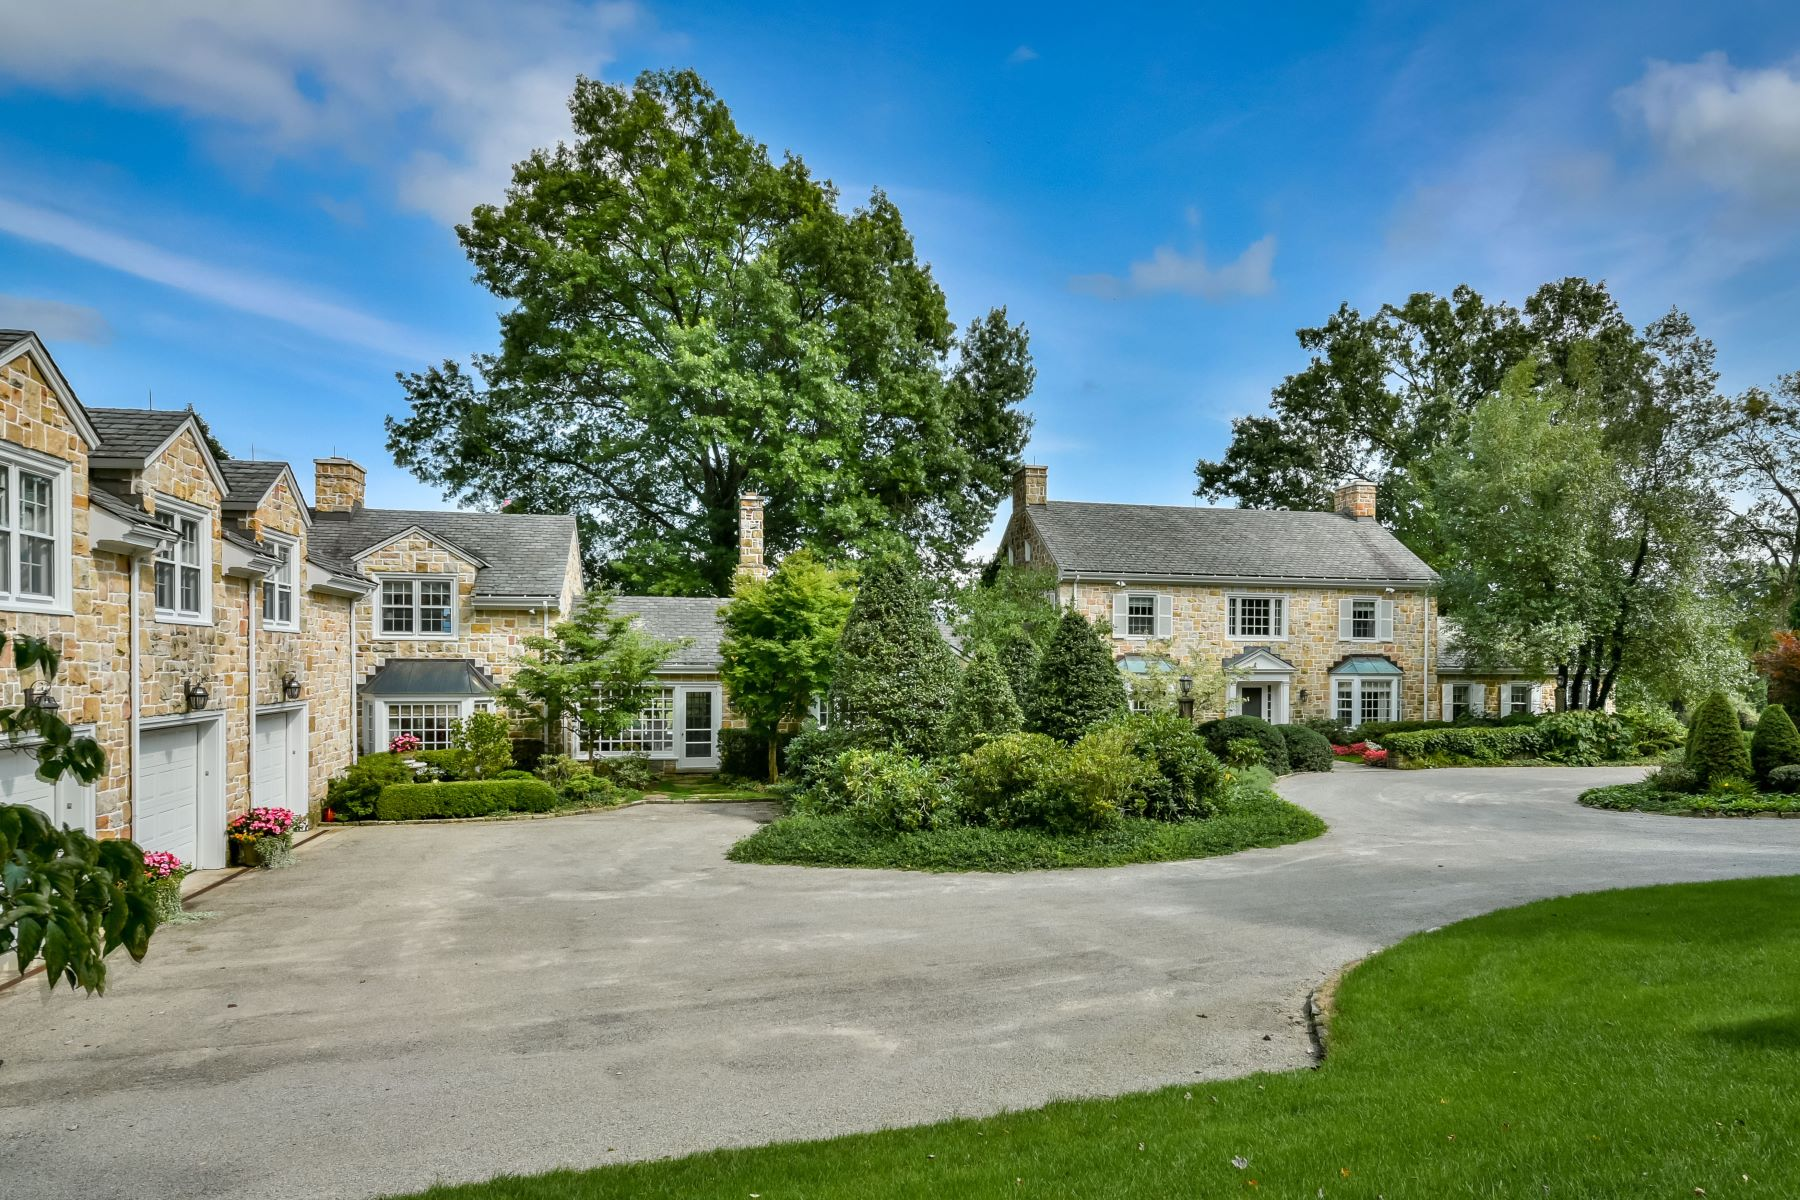 Single Family Home for Sale at Picturesque, Private Country Estate in Ligonier - 160 Woodmere Drive 160 Woodmere Dr Ligonier, Pennsylvania 15658 United States